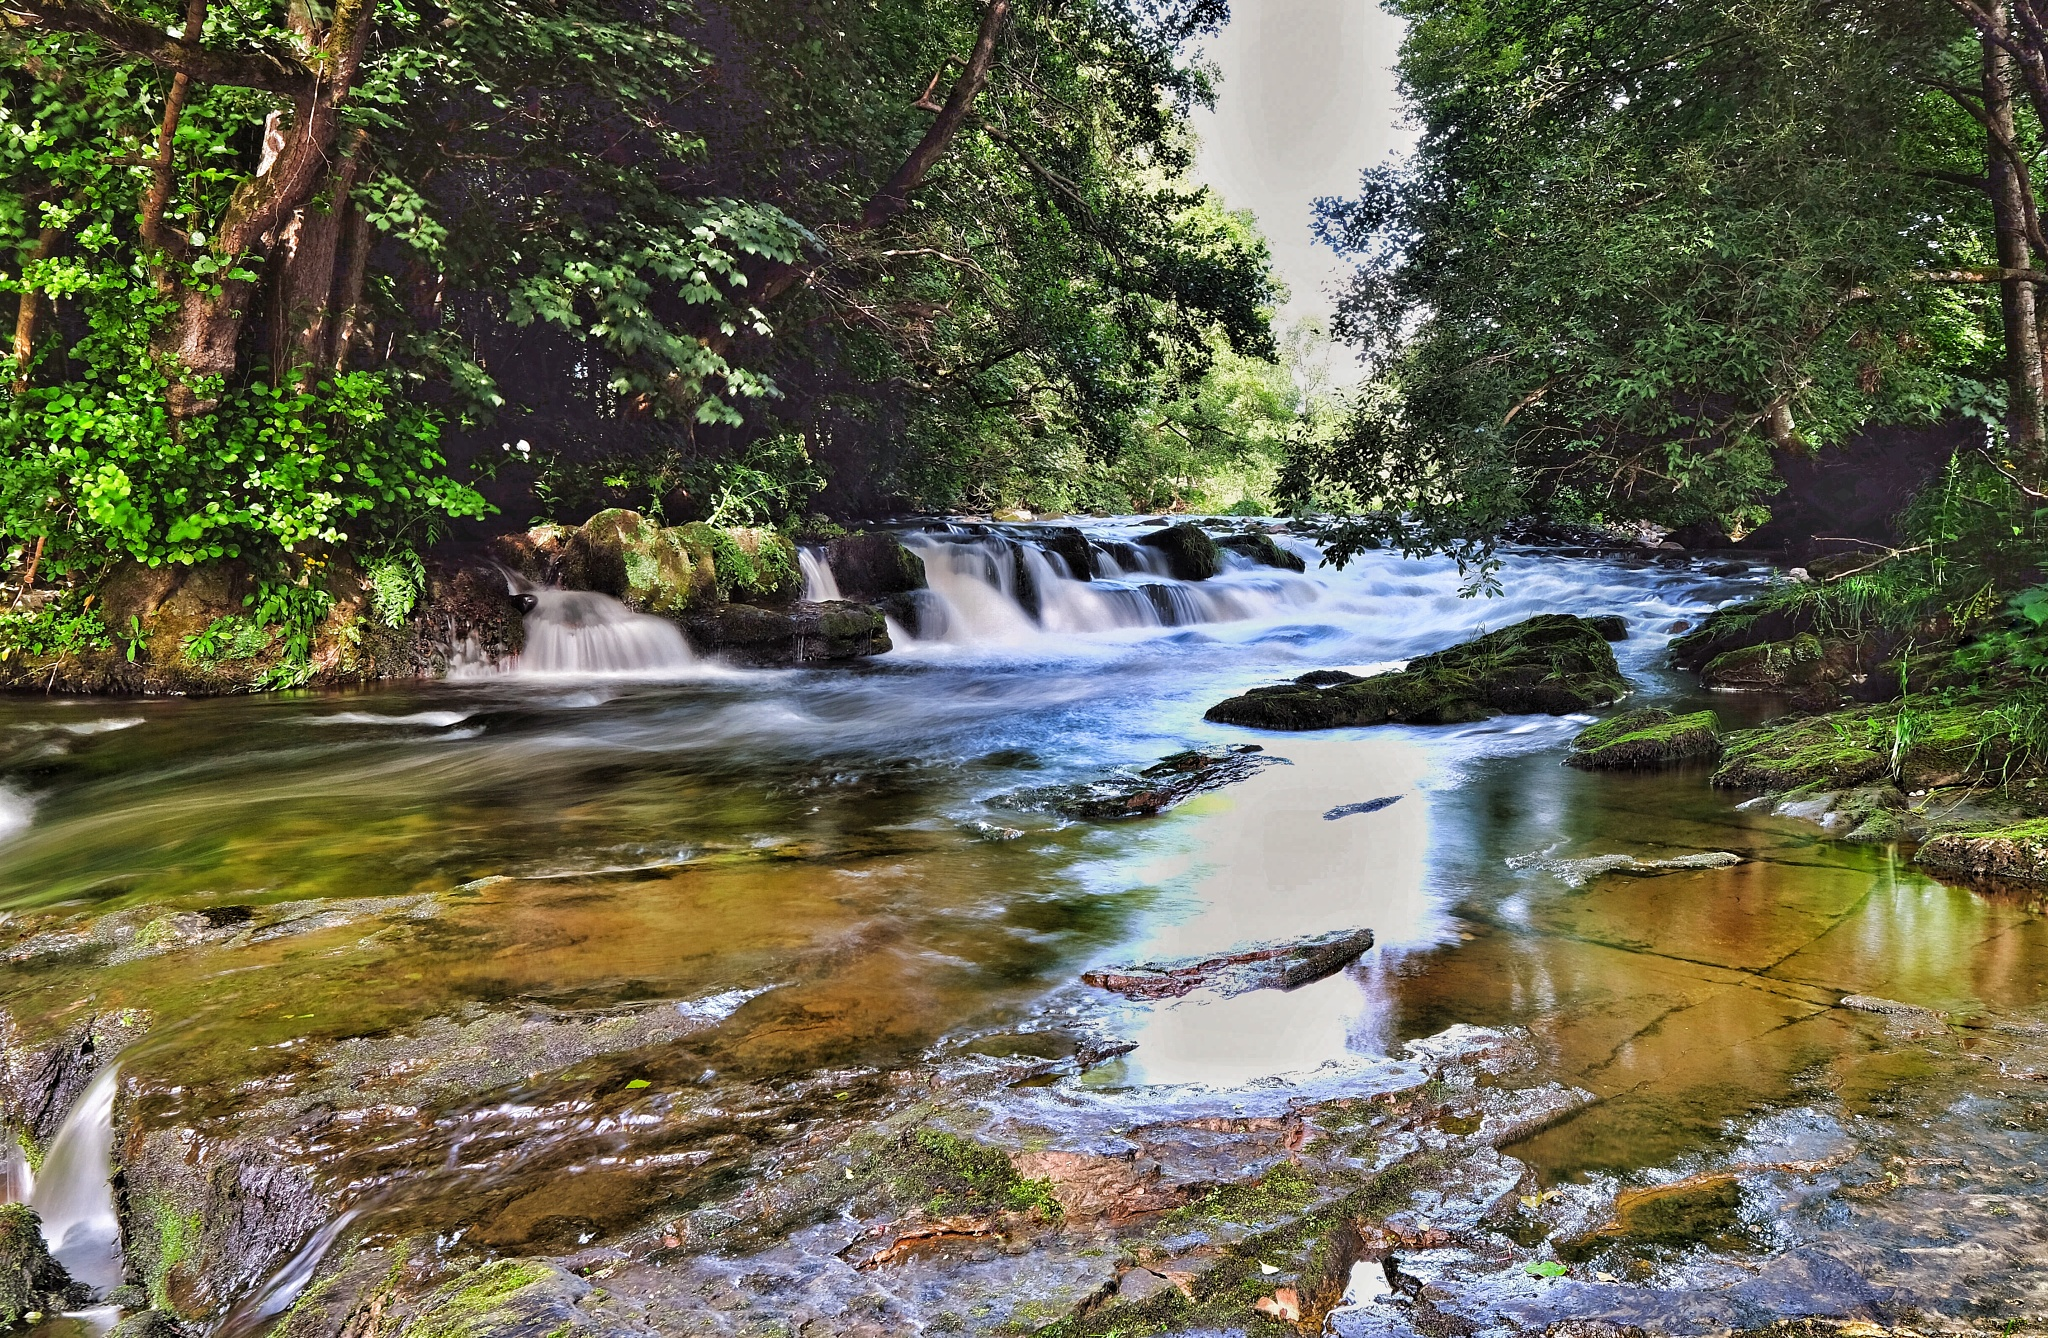 Small falls on the River Lowther by Steve Randles